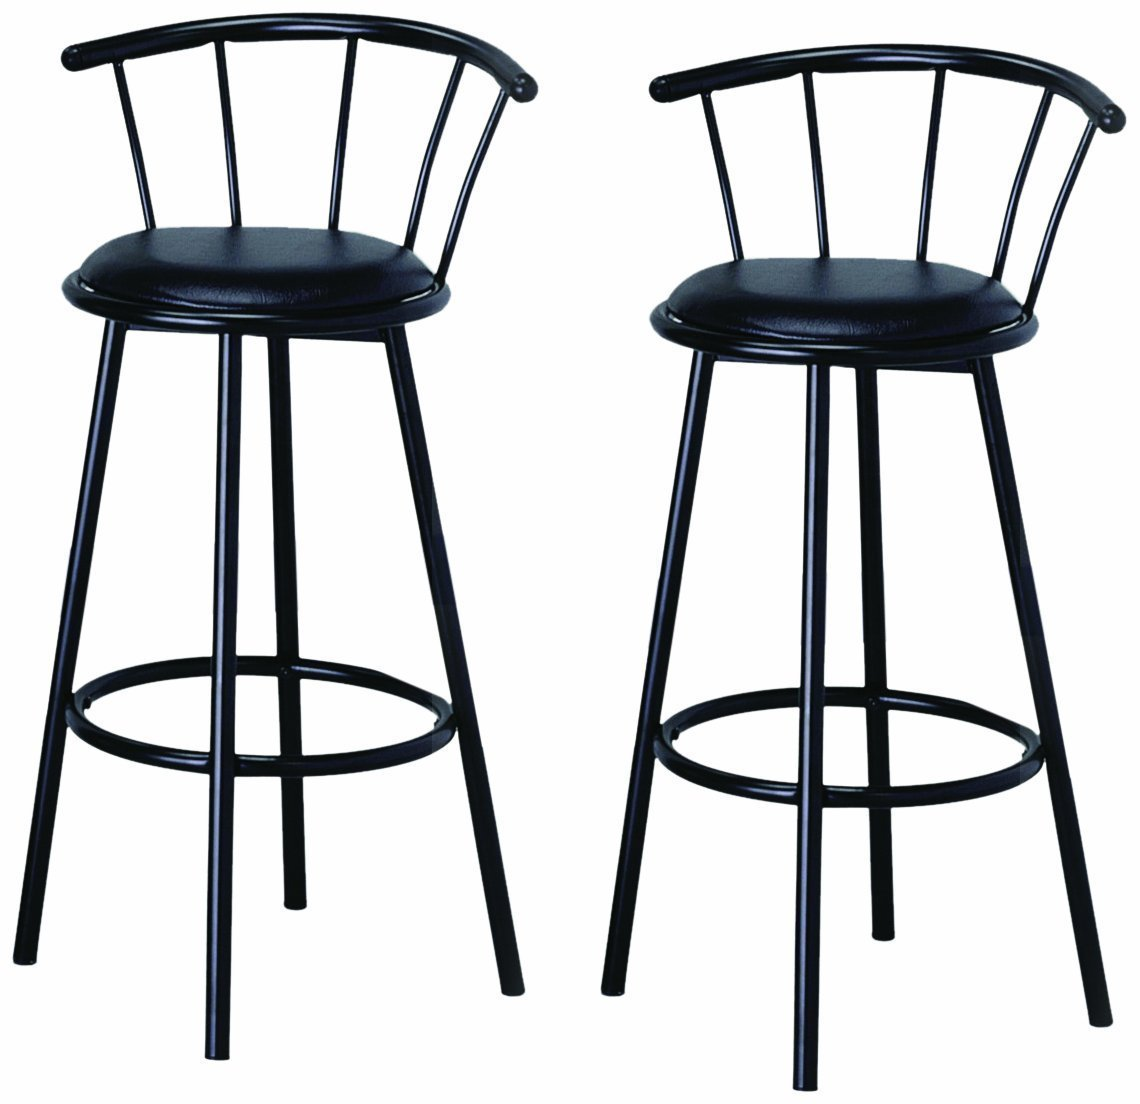 swivel bar chairs lawn 29 inch black finish dining stool set